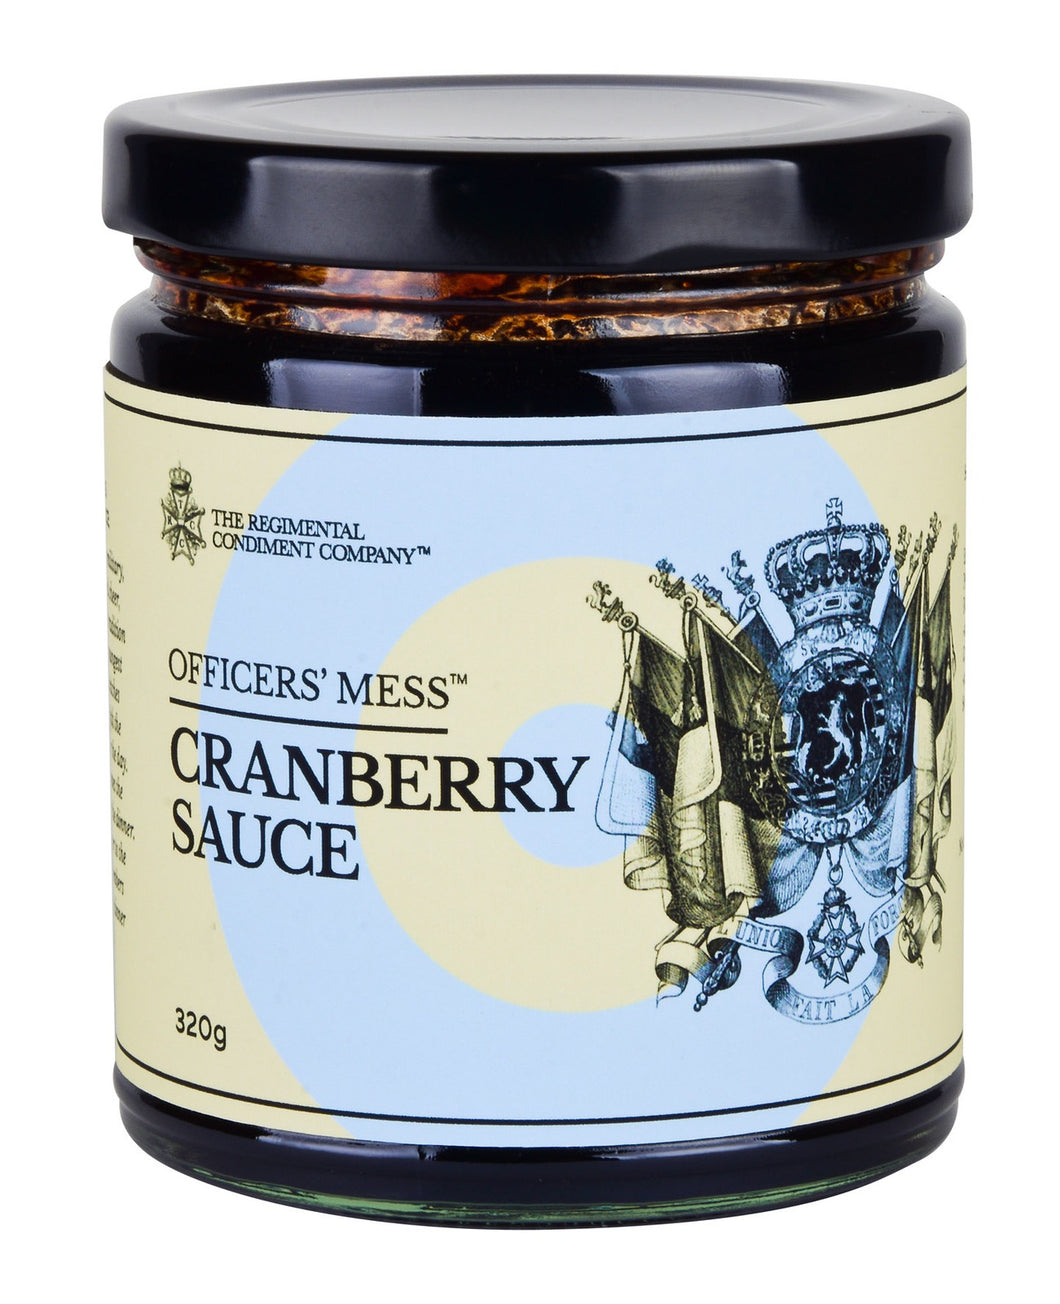 TRCC Officers Mess Cranberry Sauce 320g-The Regimental Condiment Company-Bristle by Melissa Simmonds